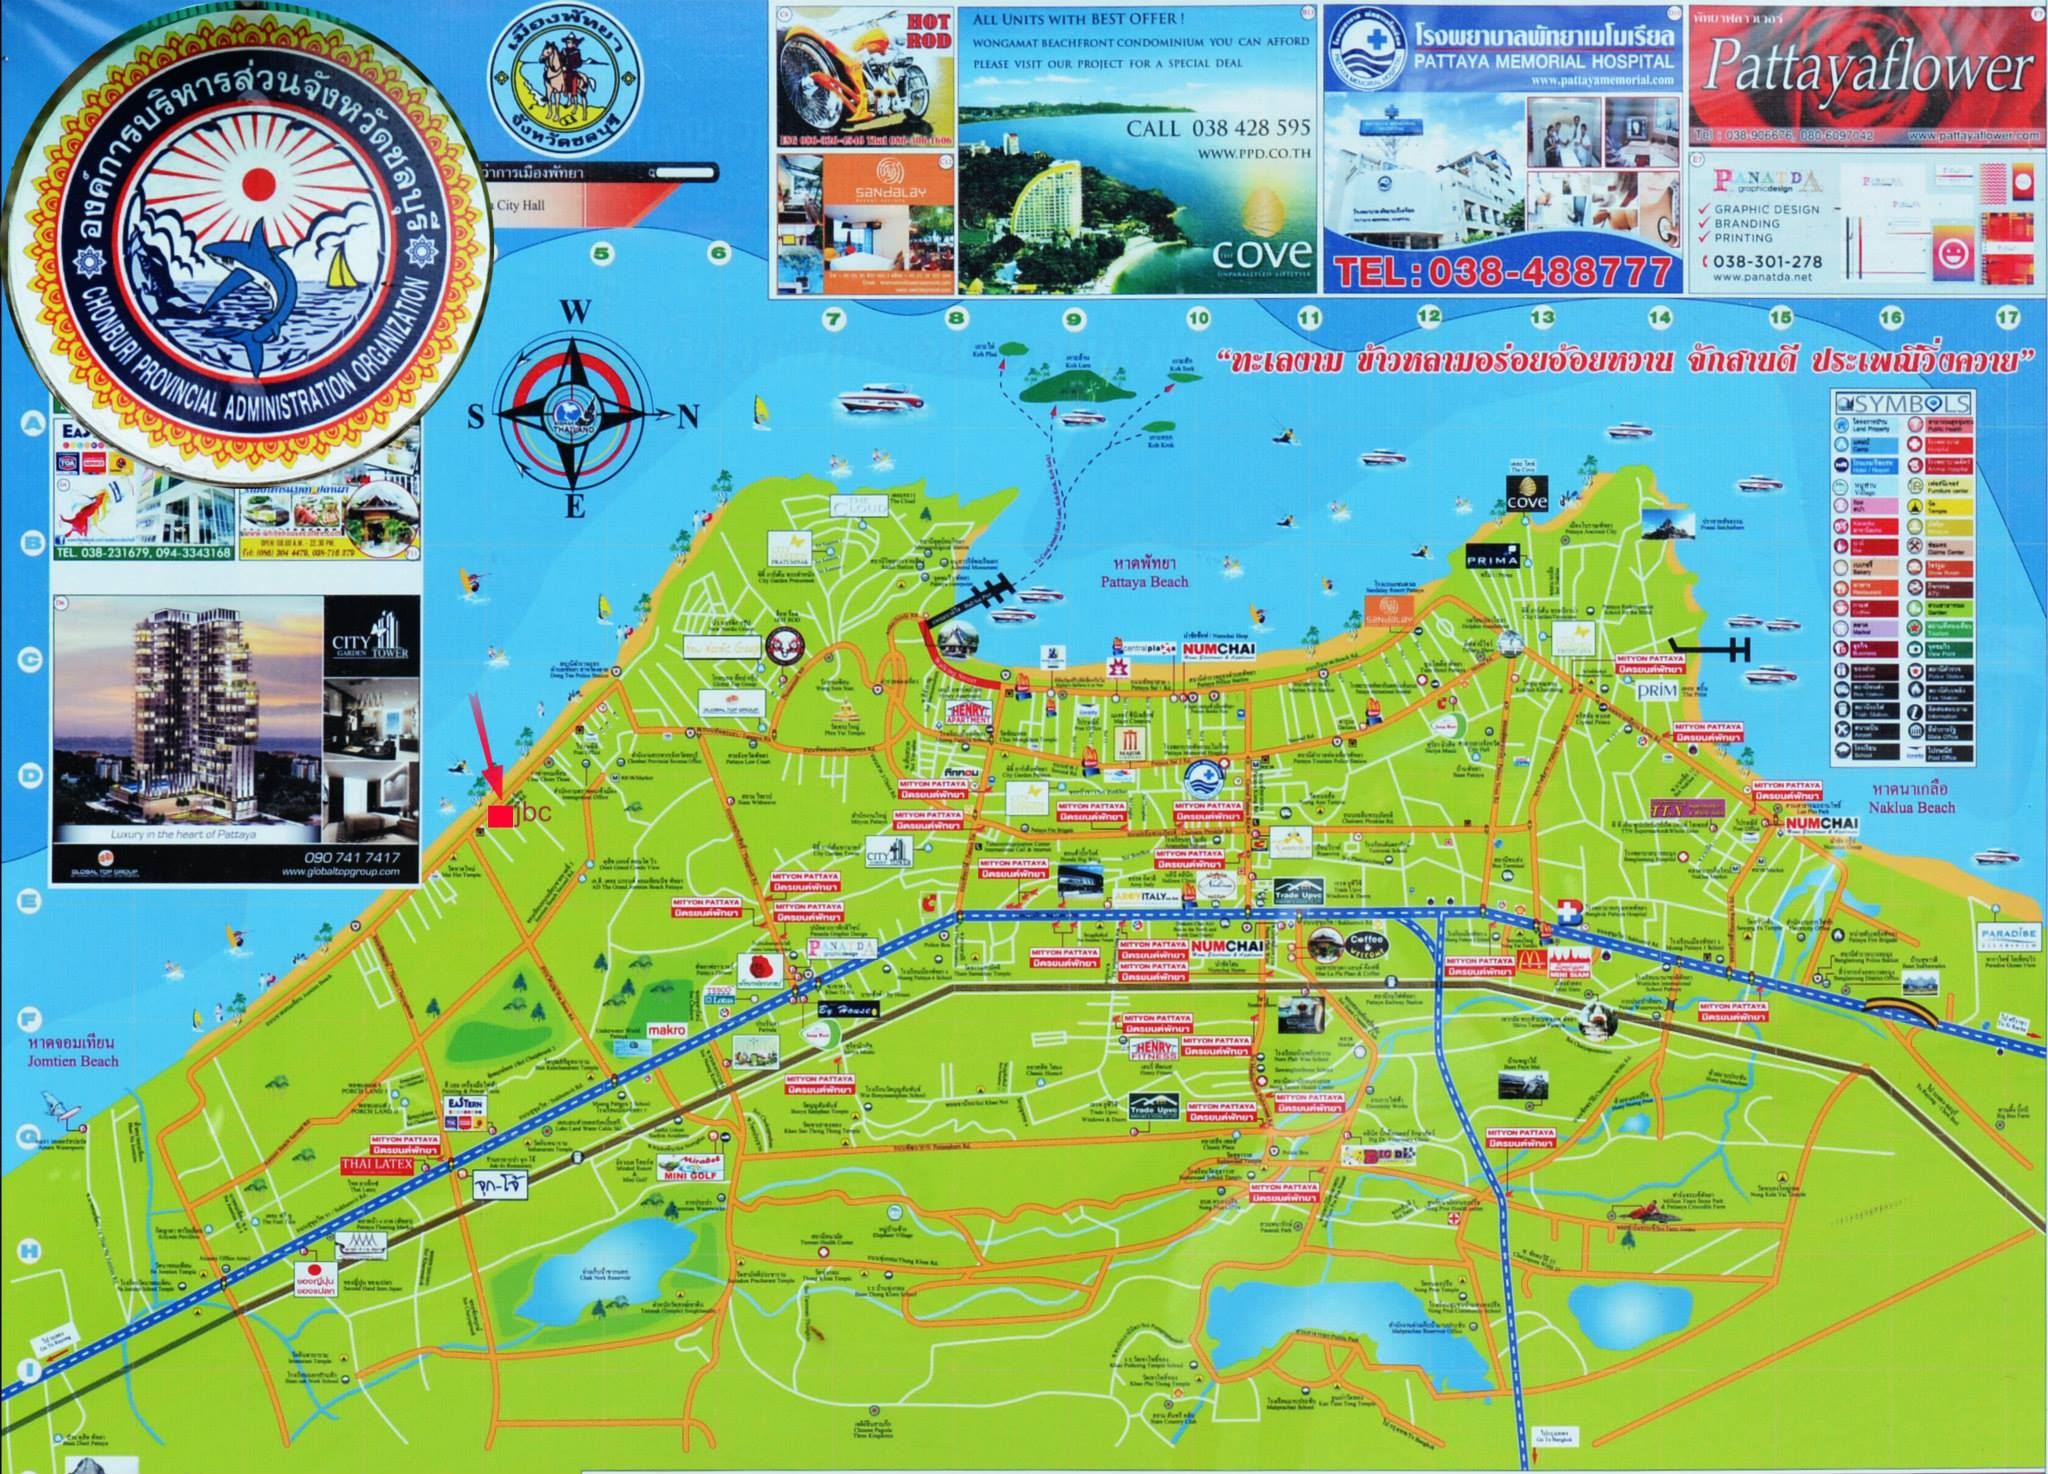 Map of Pattaya